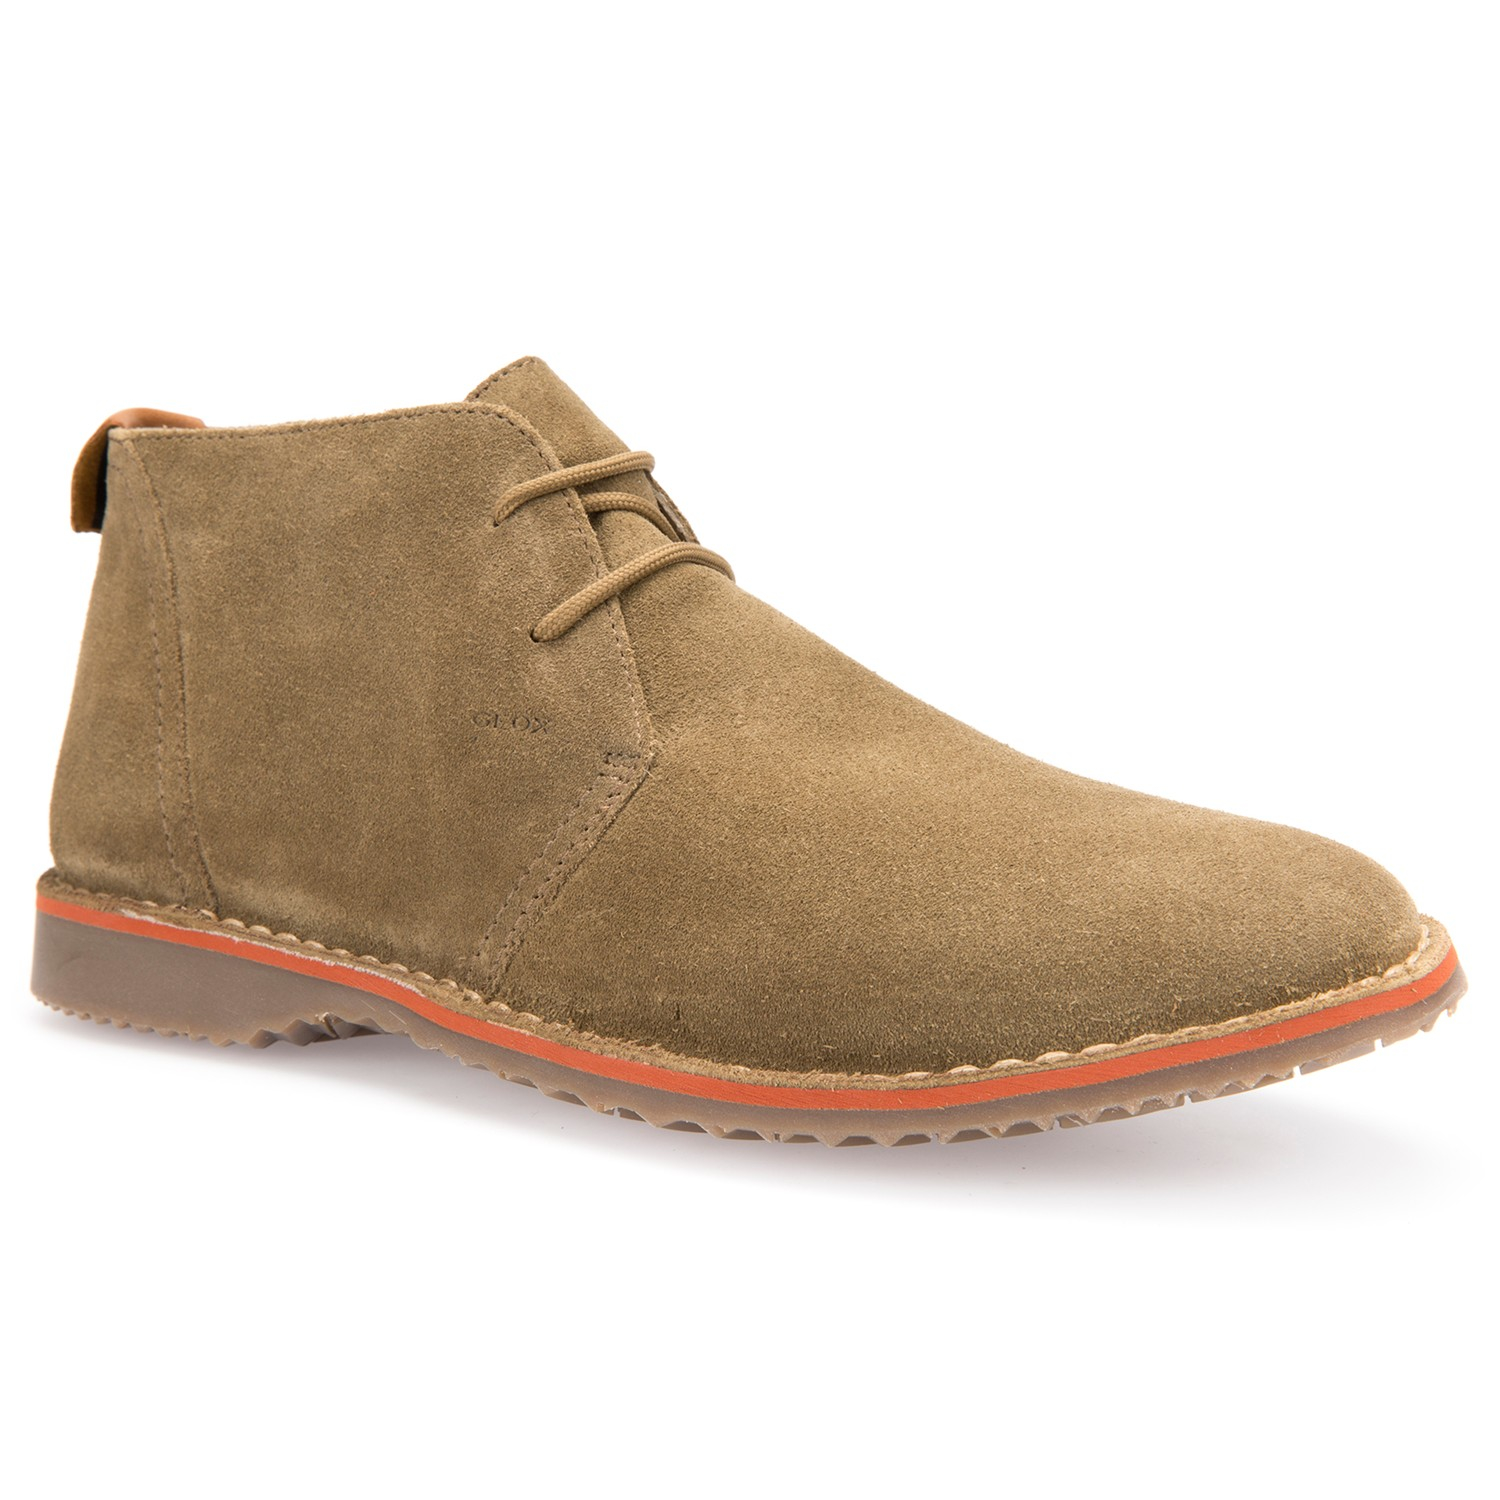 Geox Zal Lace Up Chukka Boots In Brown For Men Lyst